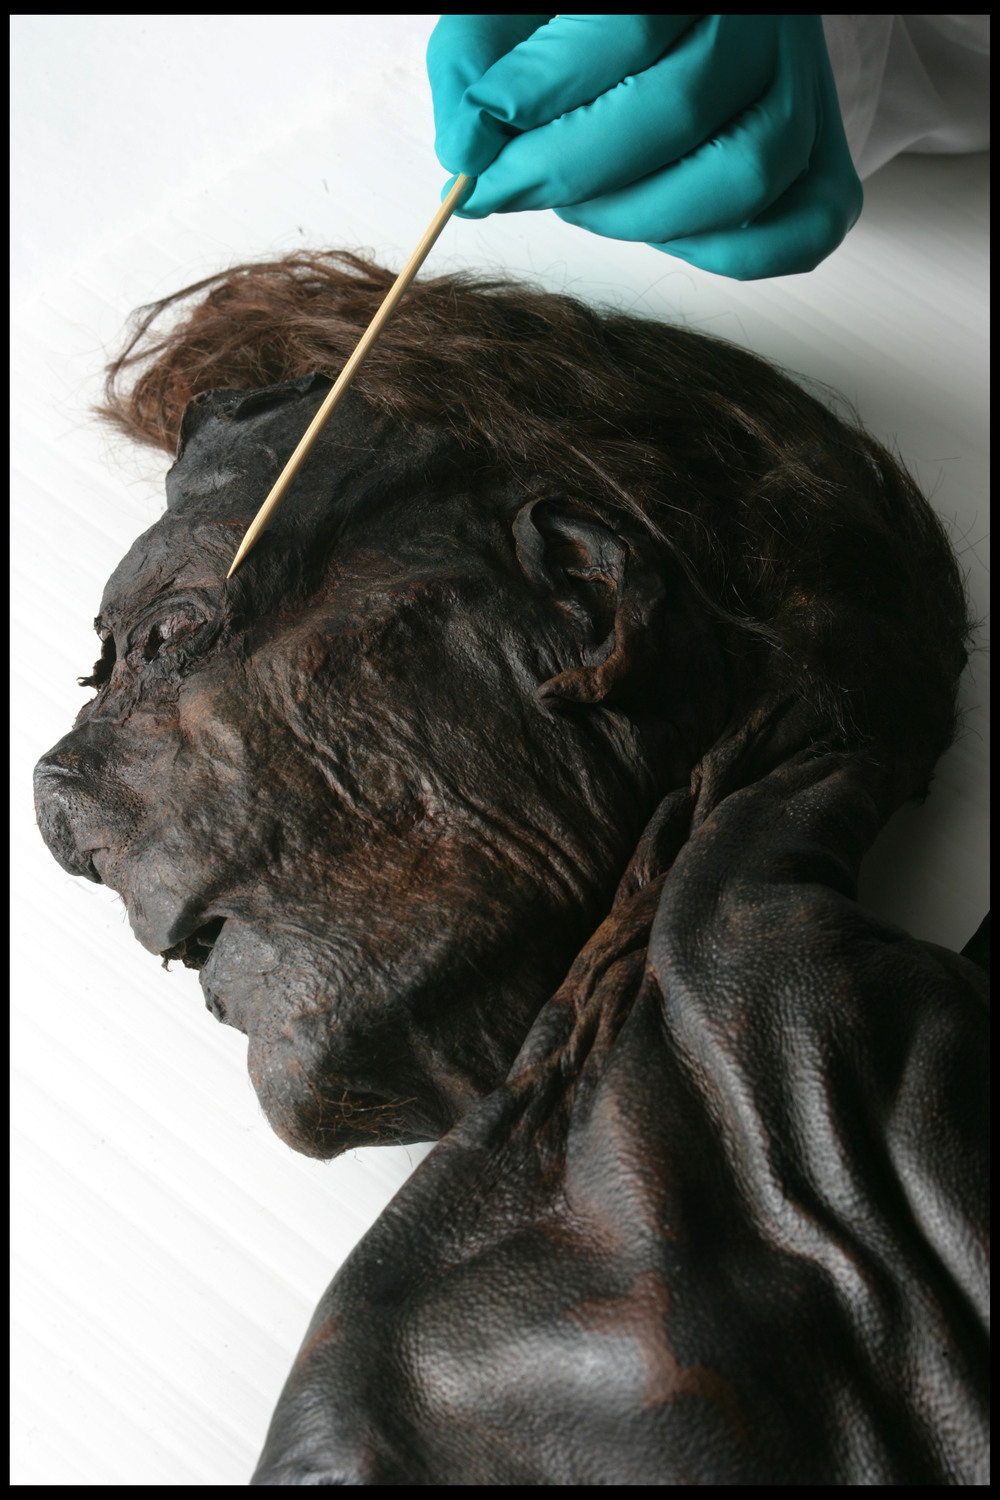 Clonycavan man, found in a bog in Co. Meath believed to date from 392-201 BC